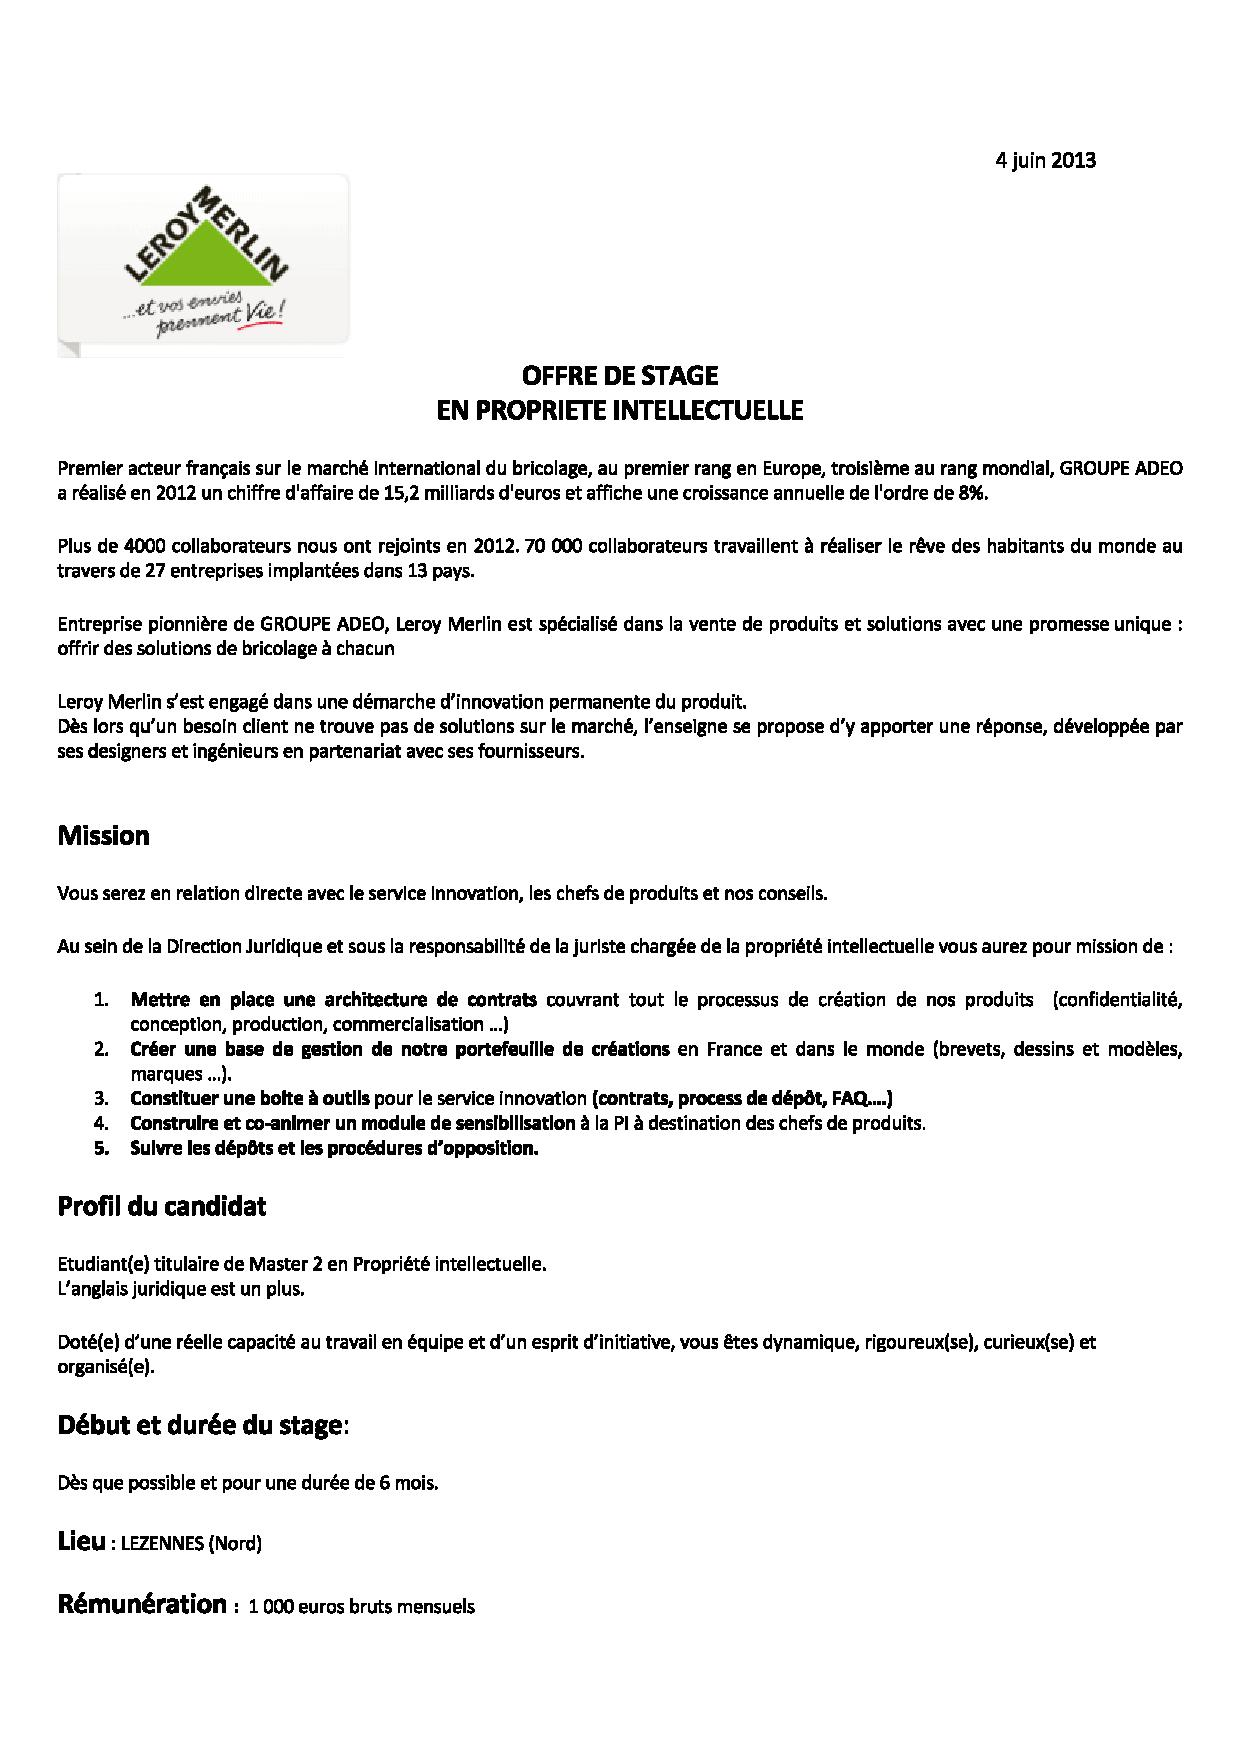 exemple de cv juriste en propri u00e9t u00e9 intellectuelle